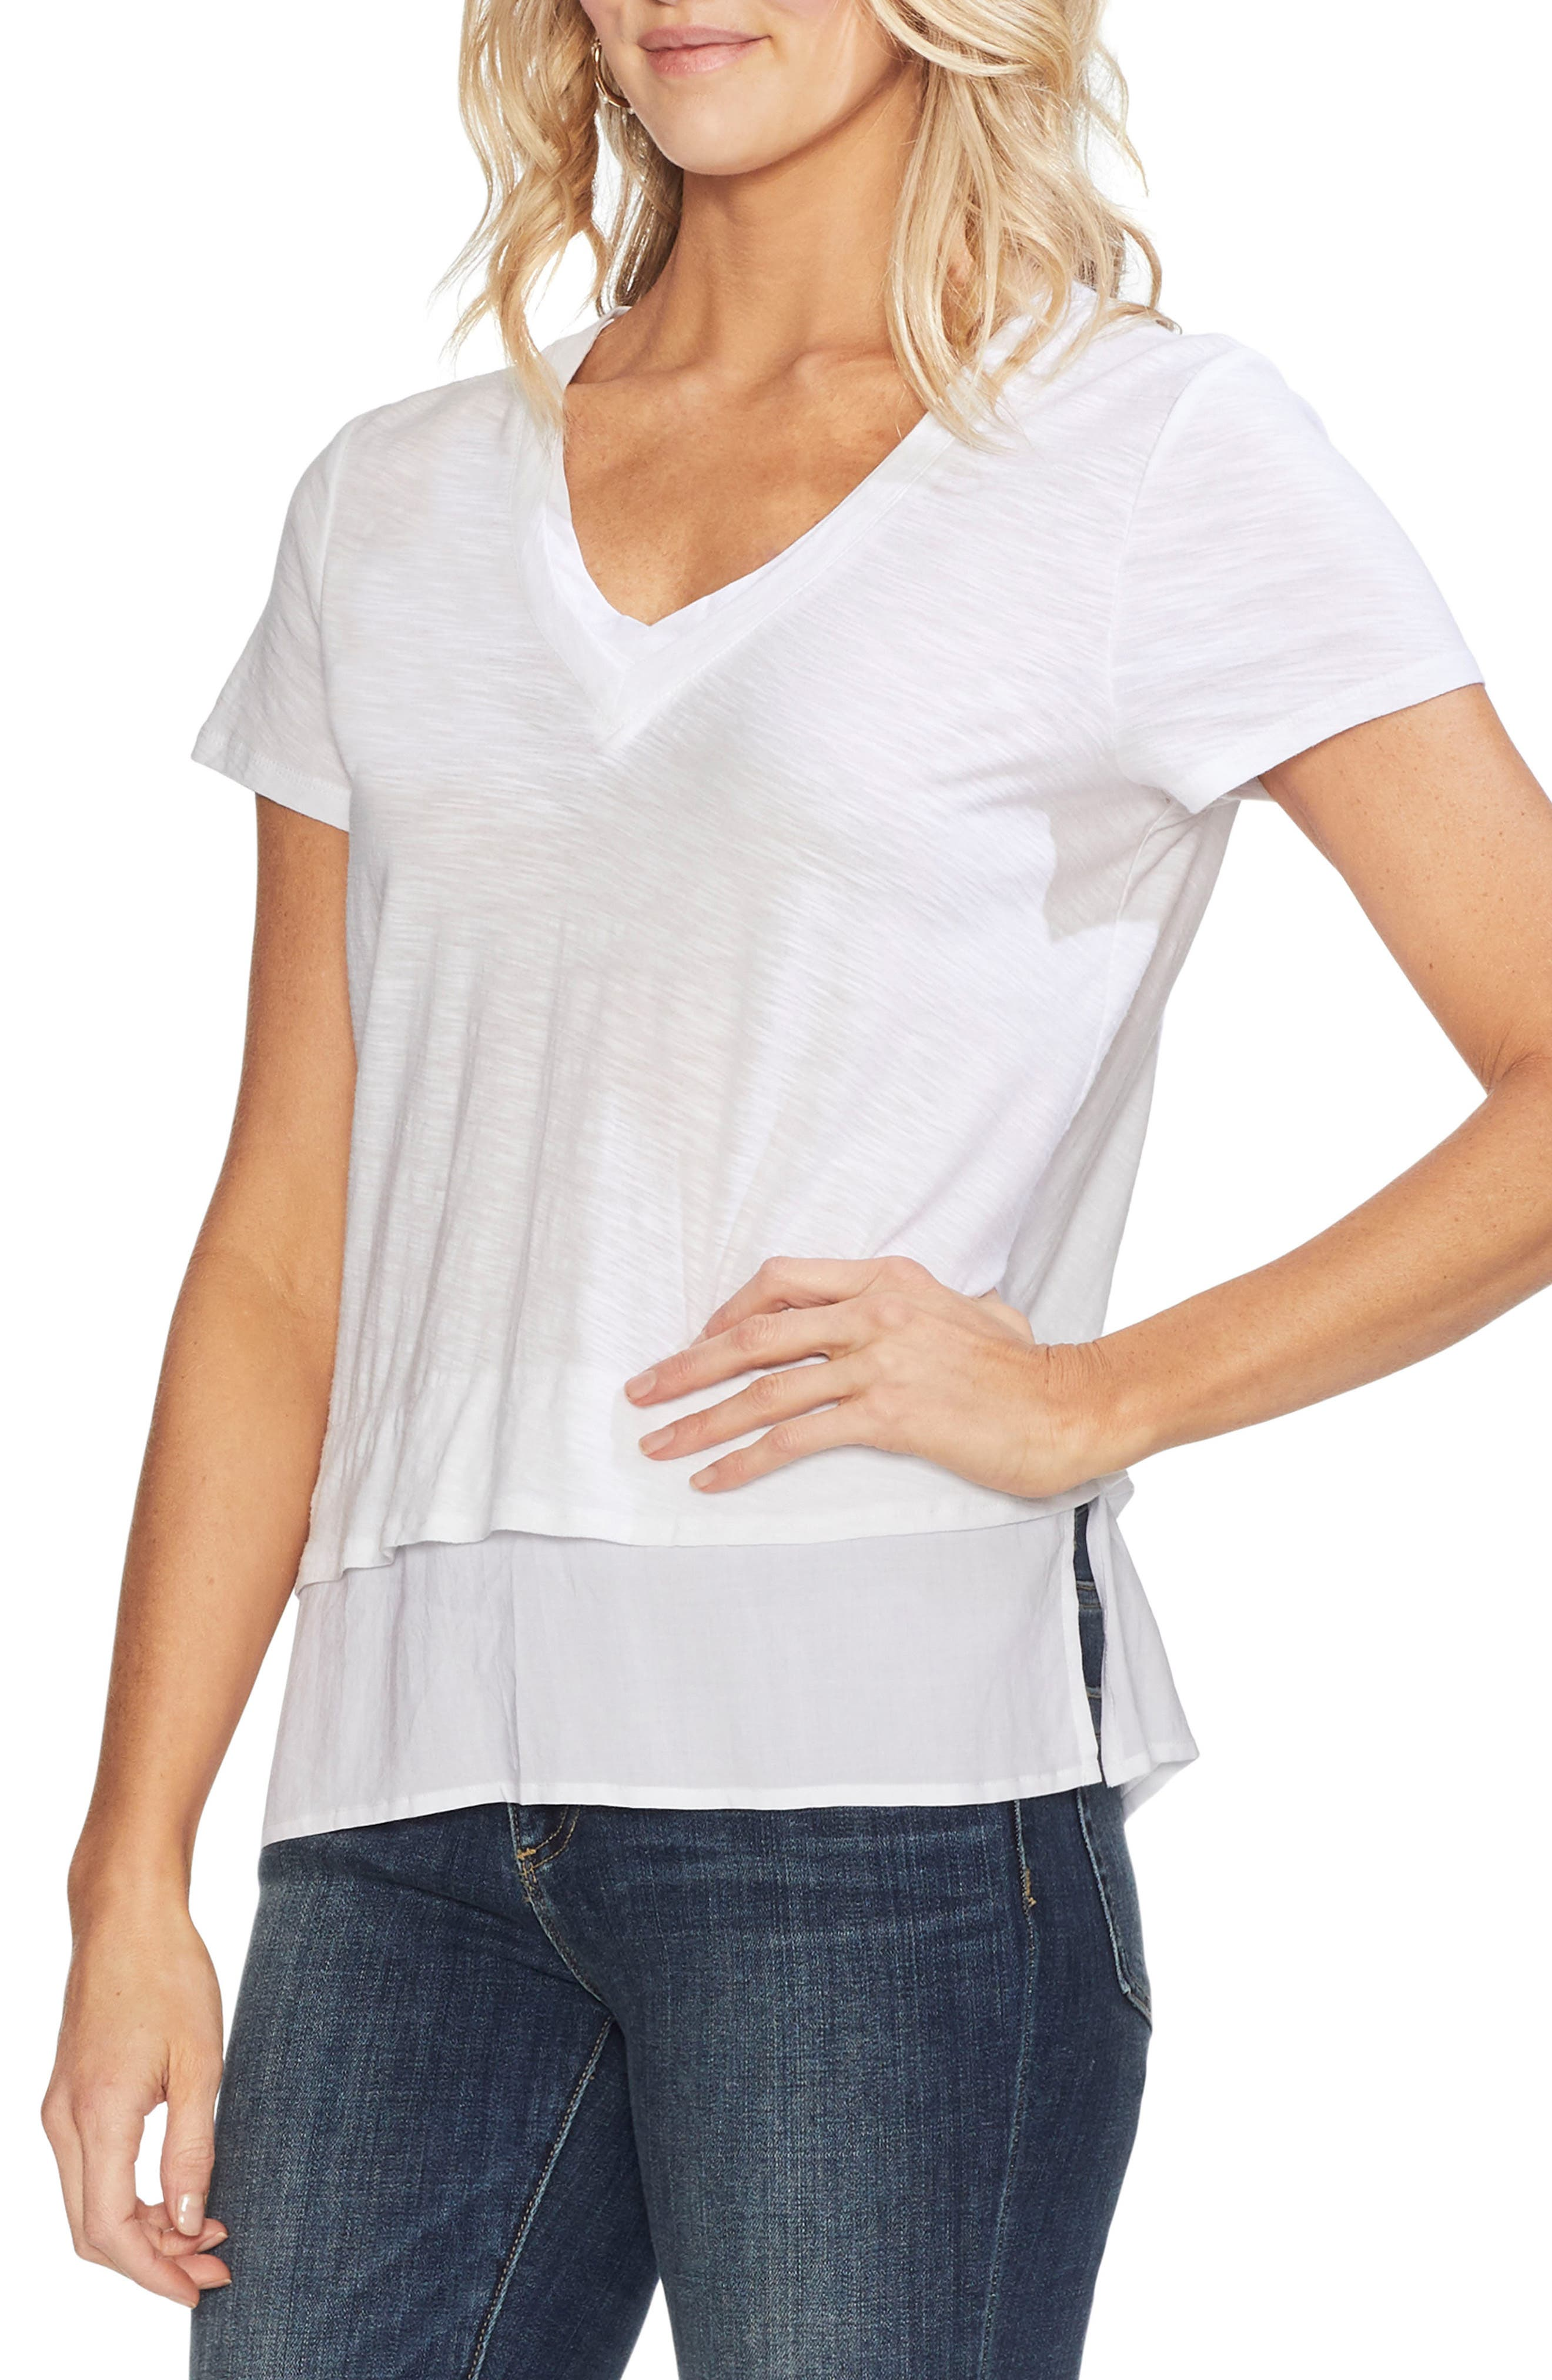 a20141da Petite Vince Camuto Layered Look V-Neck Tee, White